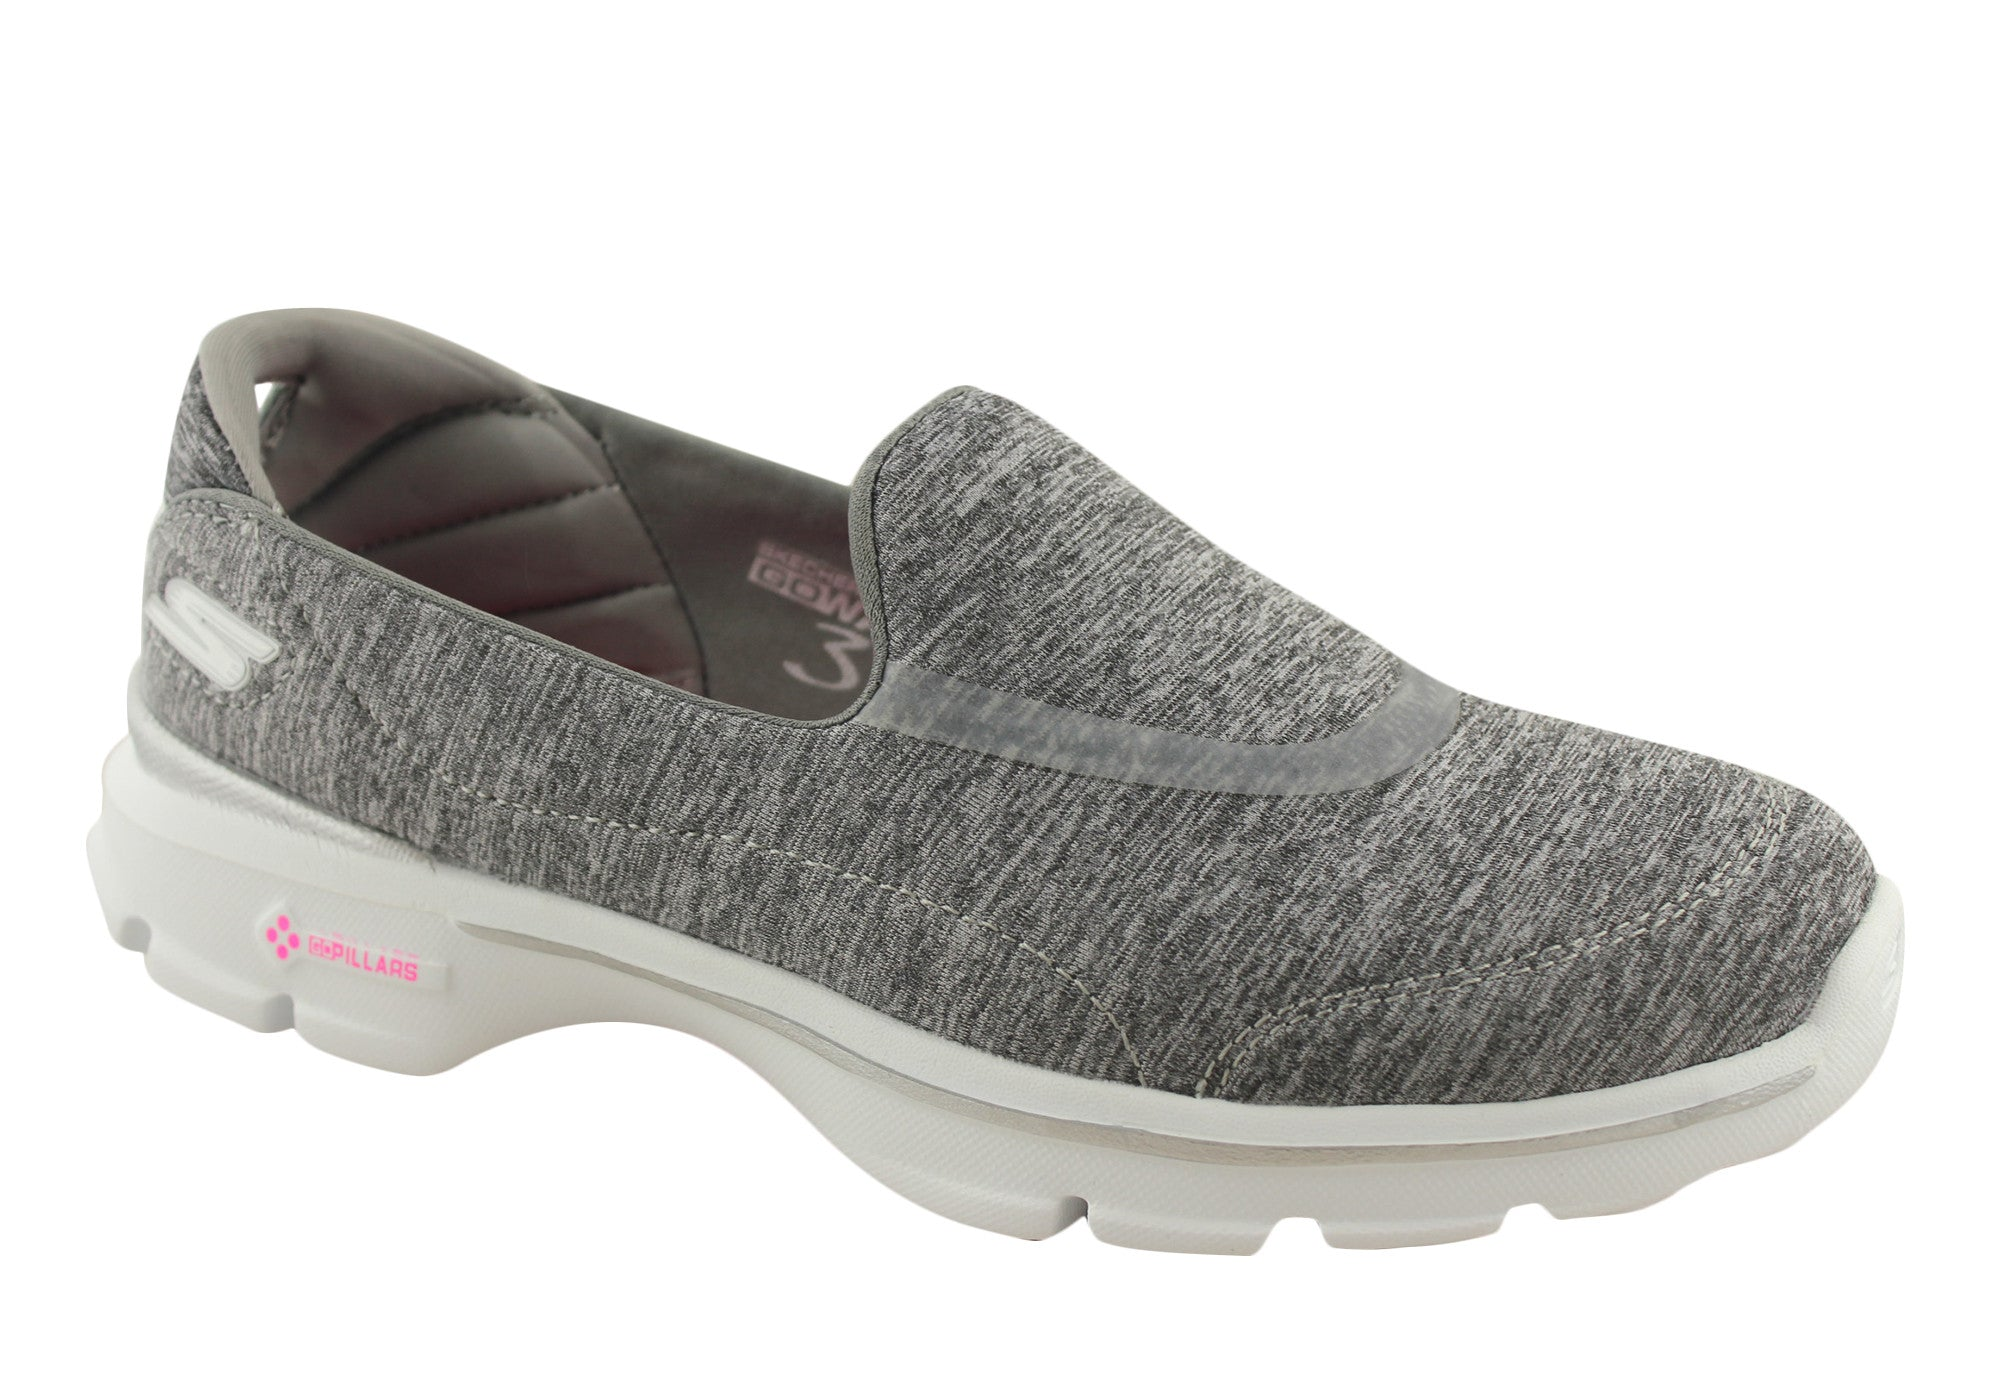 Skechers Go Walk 3 Reboot Womens Comfortable Shoes